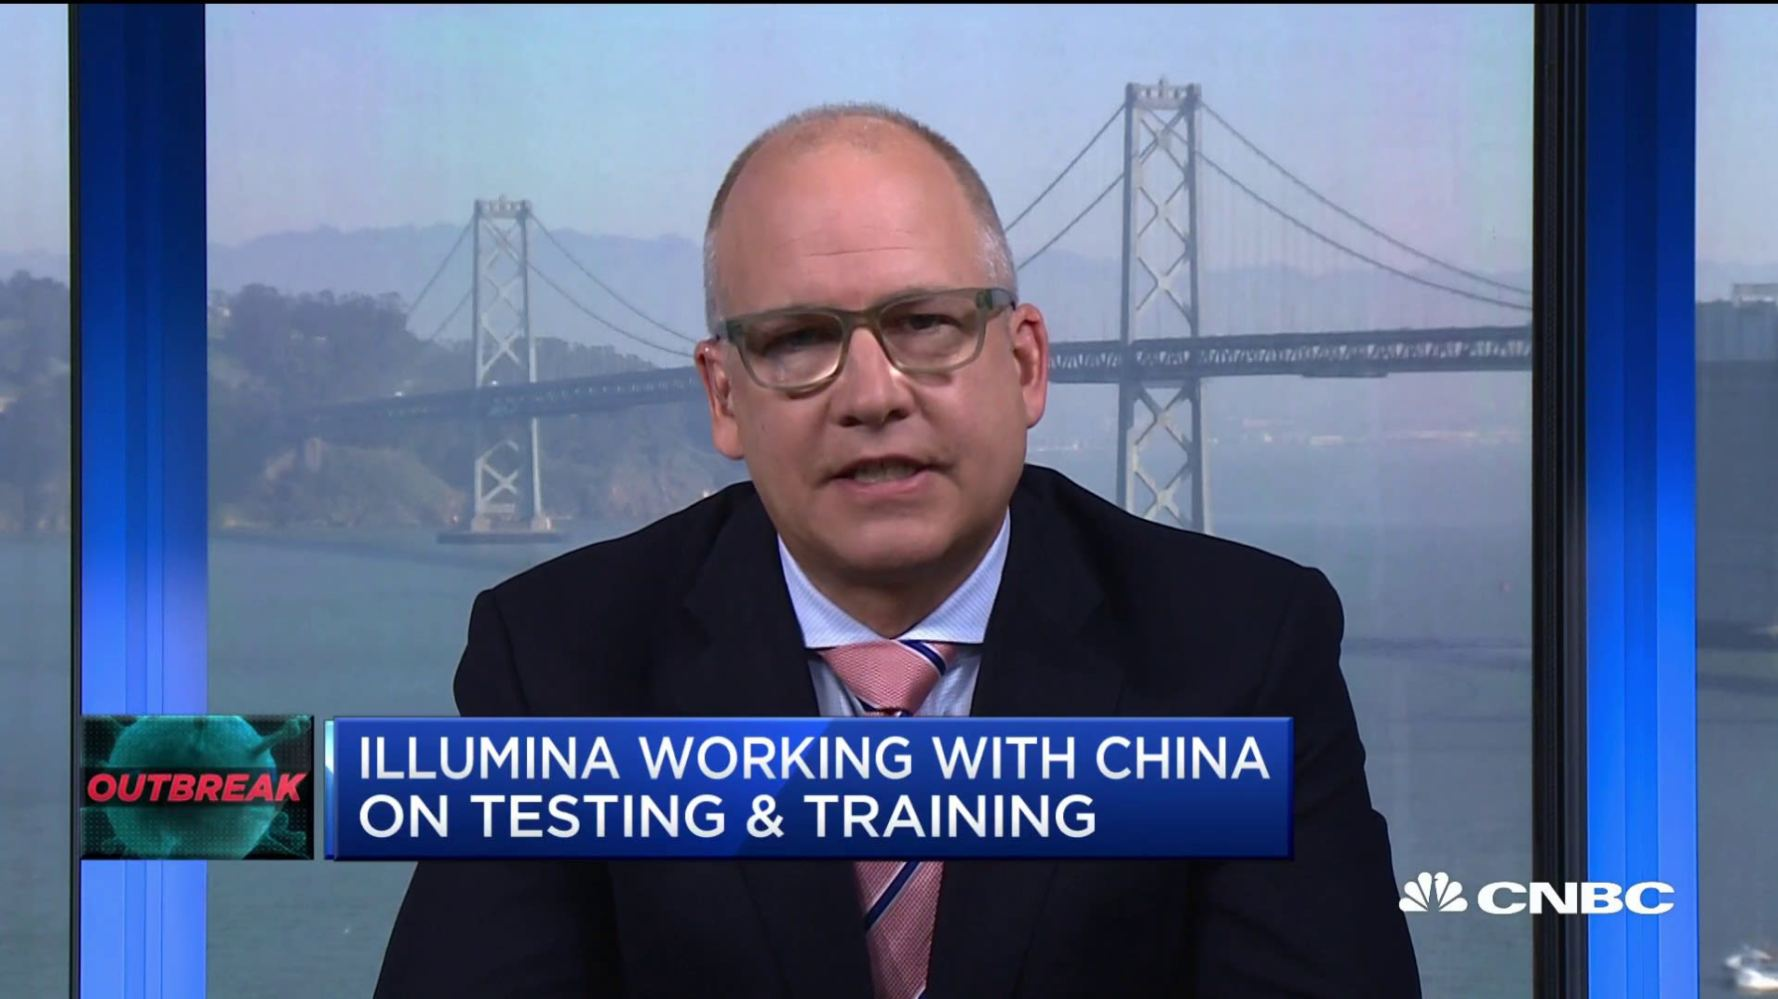 Illumina CMO on working with China on coronavirus cure